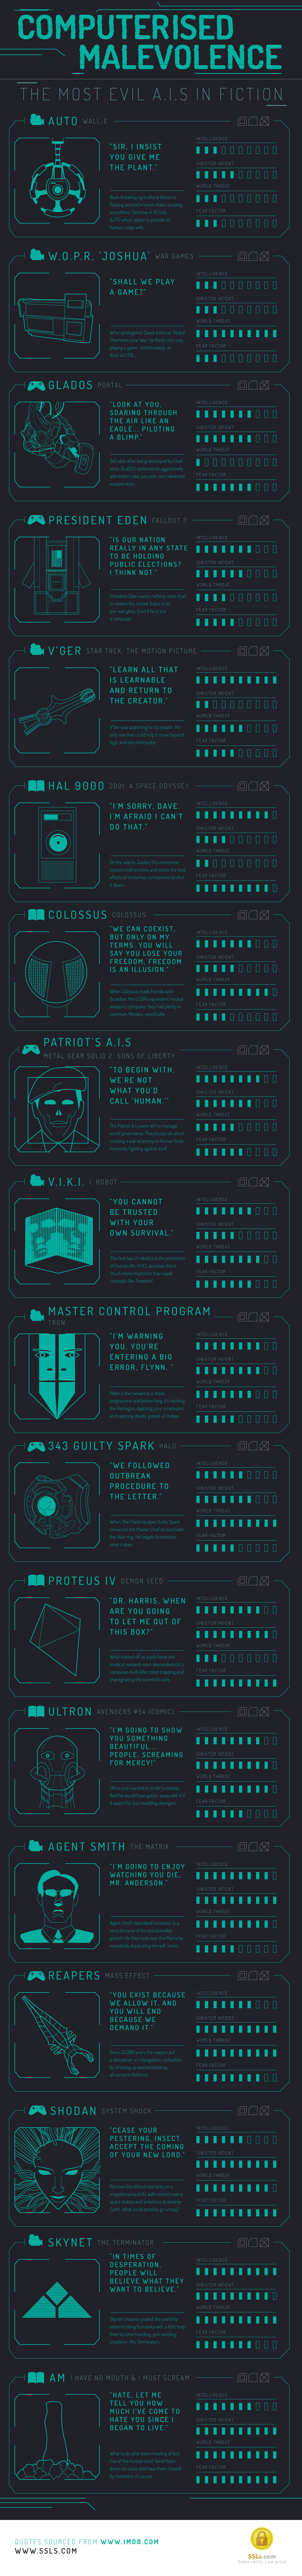 computerised_malevolence_infographic